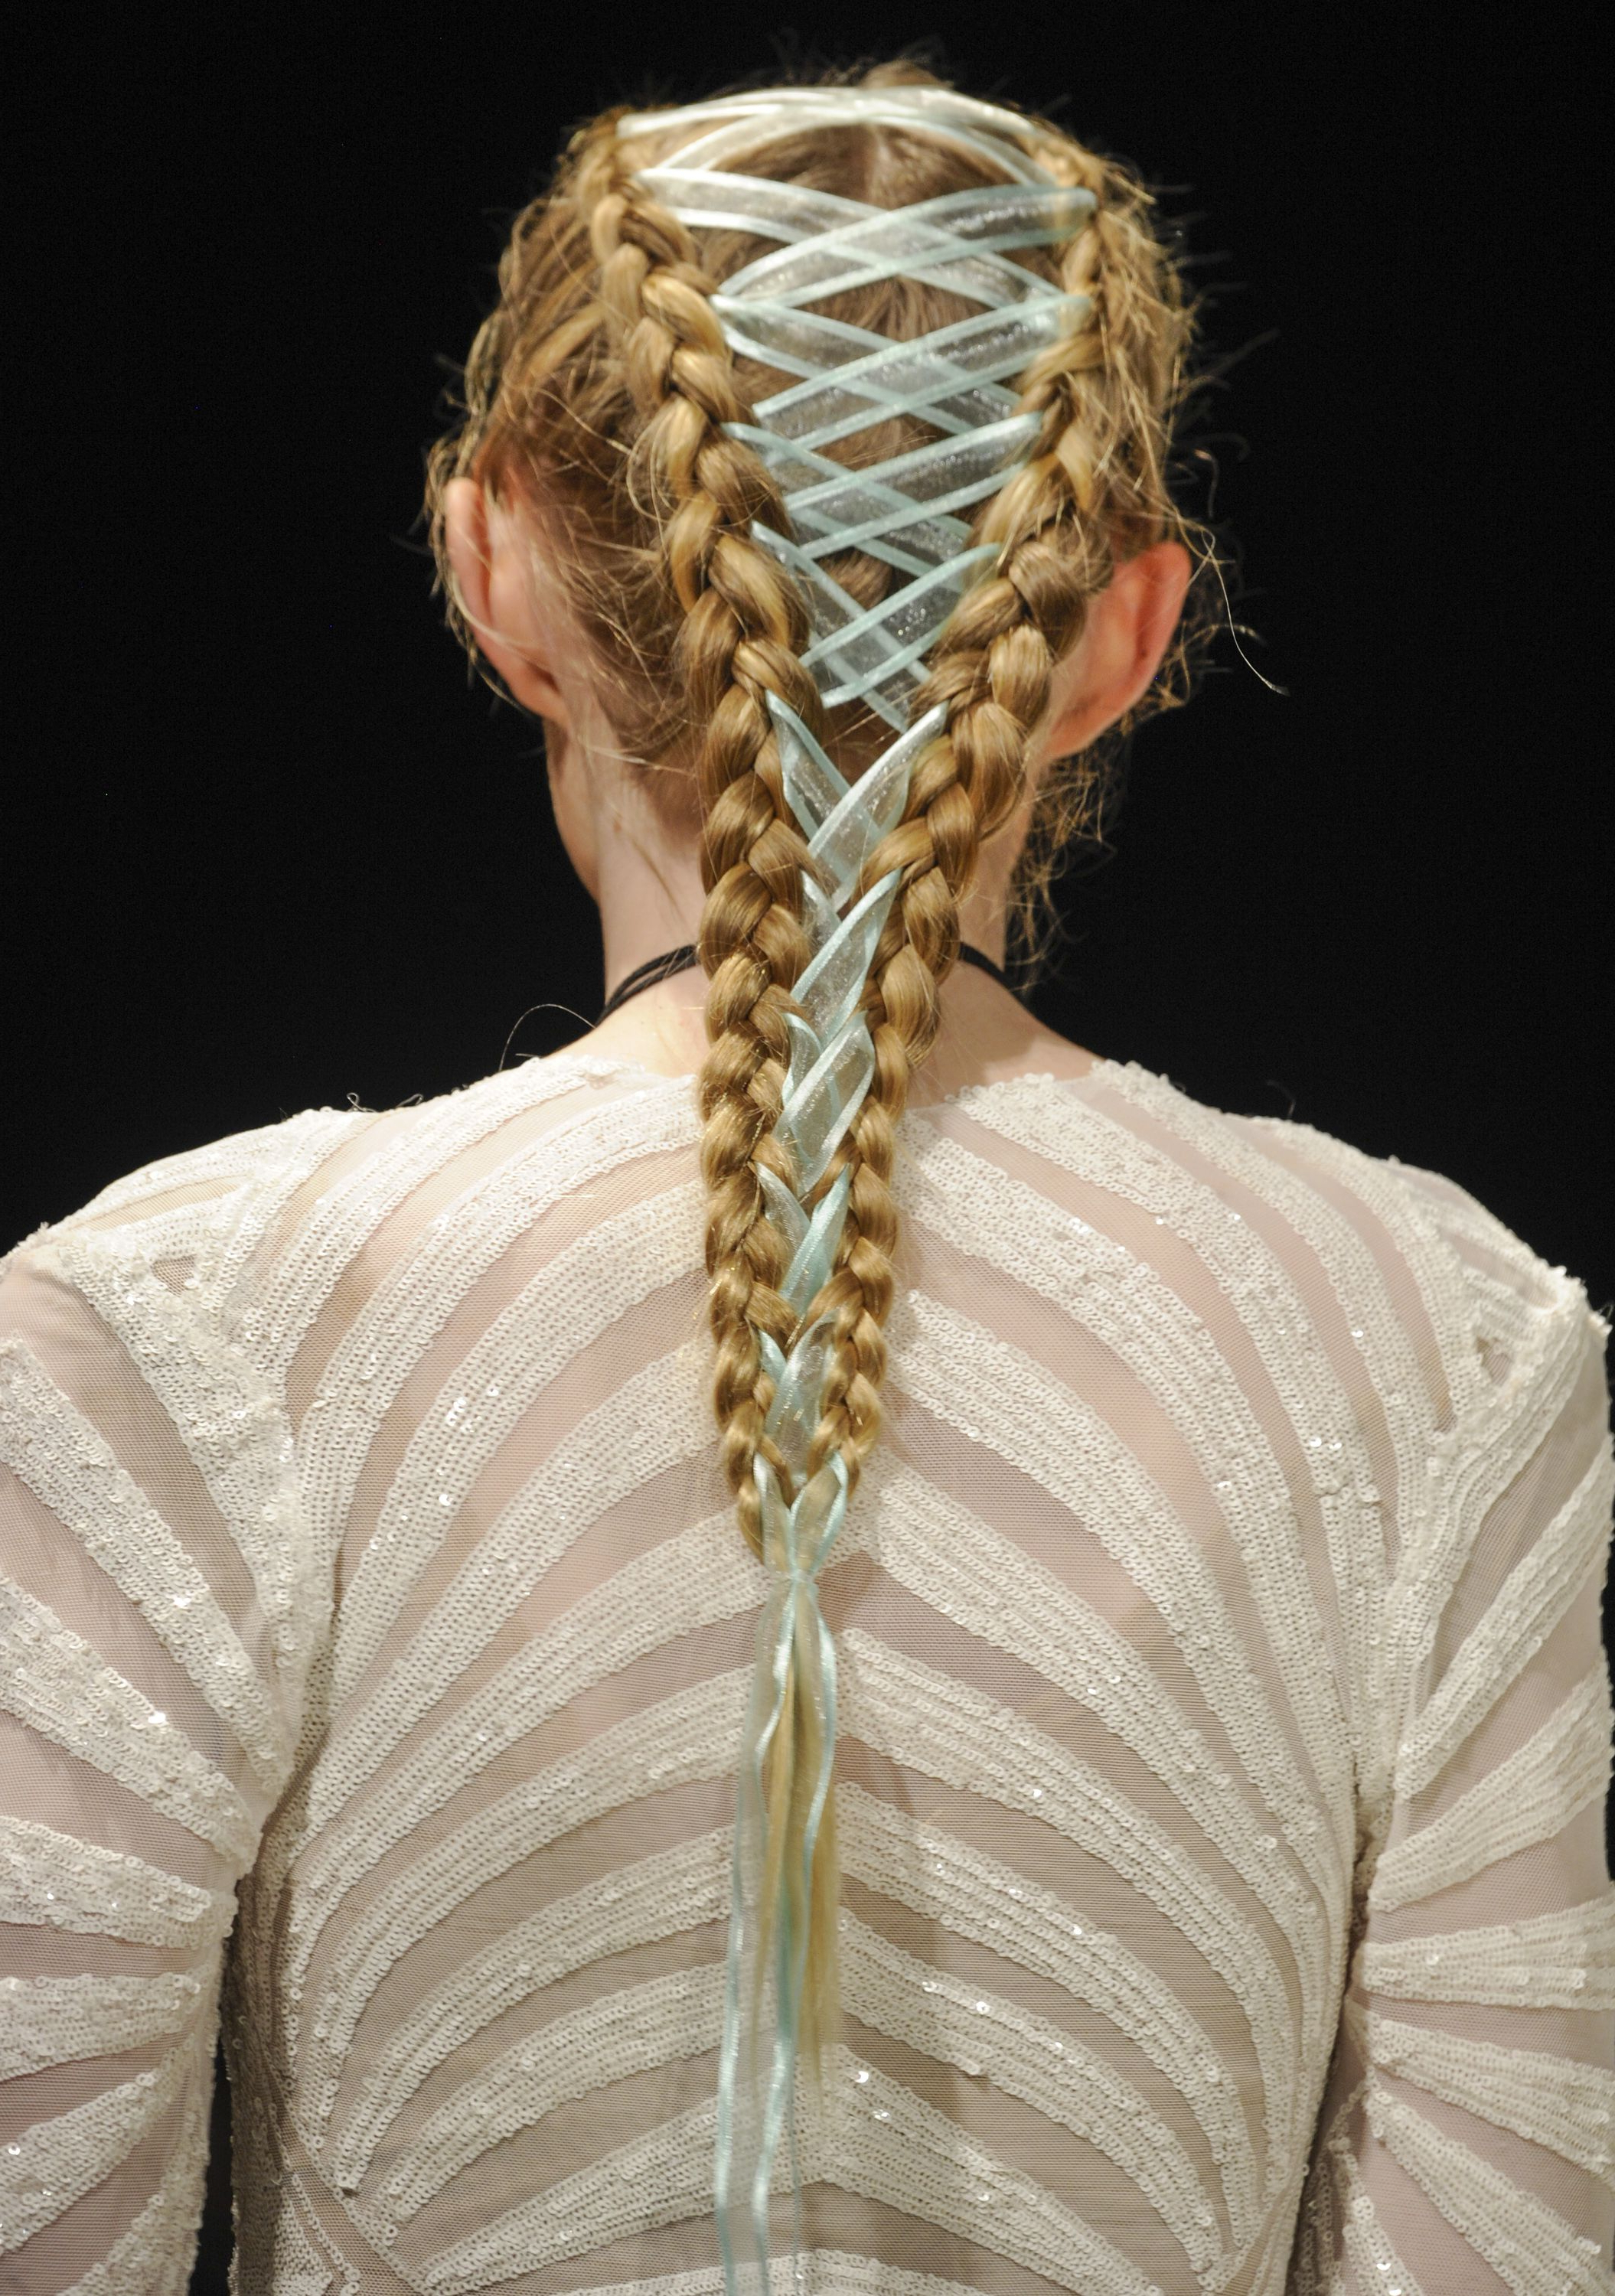 60 Easy Braided Hairstyles – Cool Braid How To's & Ideas Within Favorite Wrapped Ponytail Braid Hairstyles (View 9 of 20)